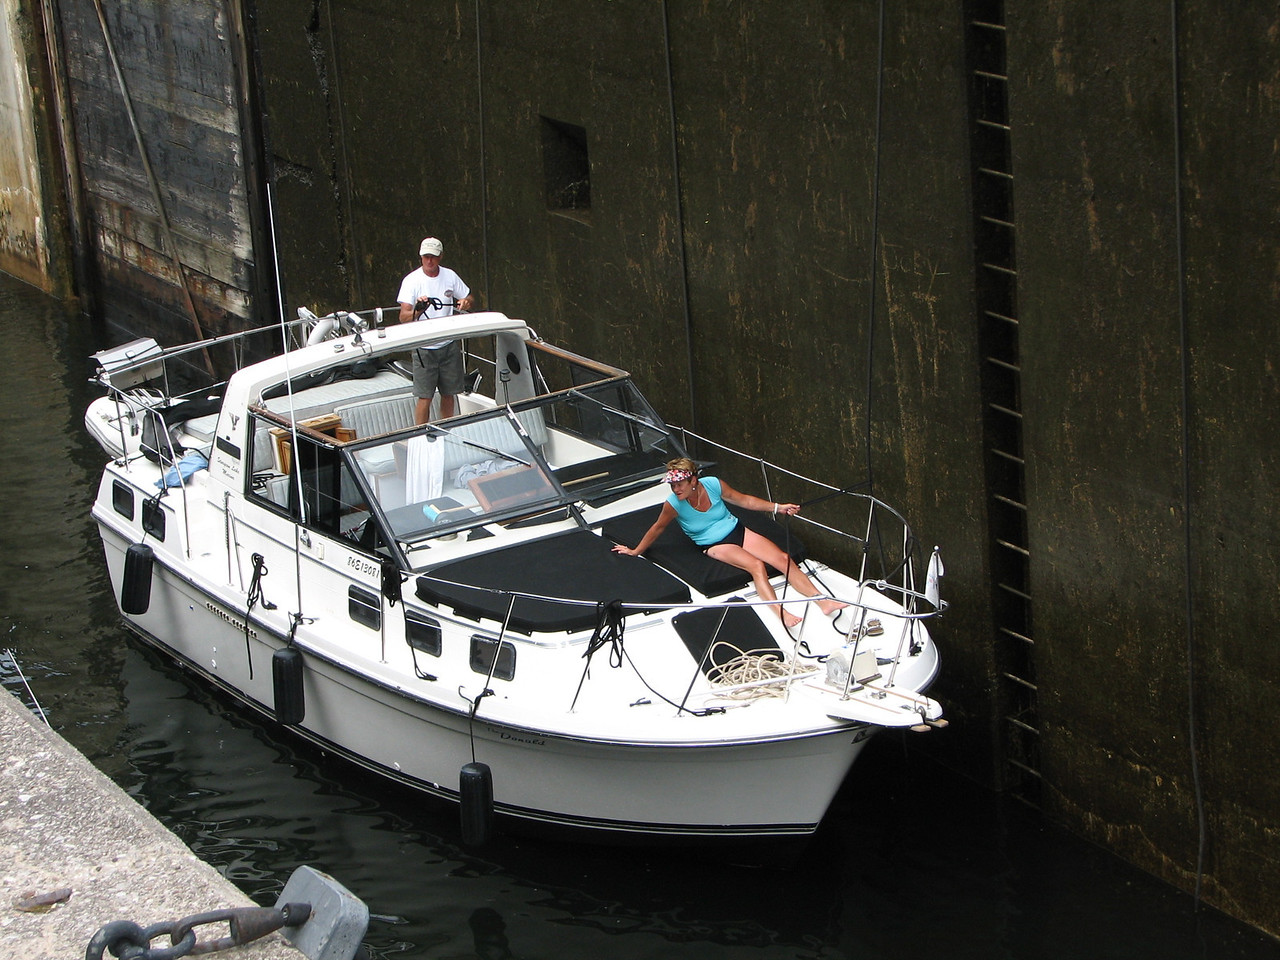 A power boat locking through lock 42.  Persons both fore and aft hold on to the cable to secure the position of their boat as the water gushes into the lock  chamber.